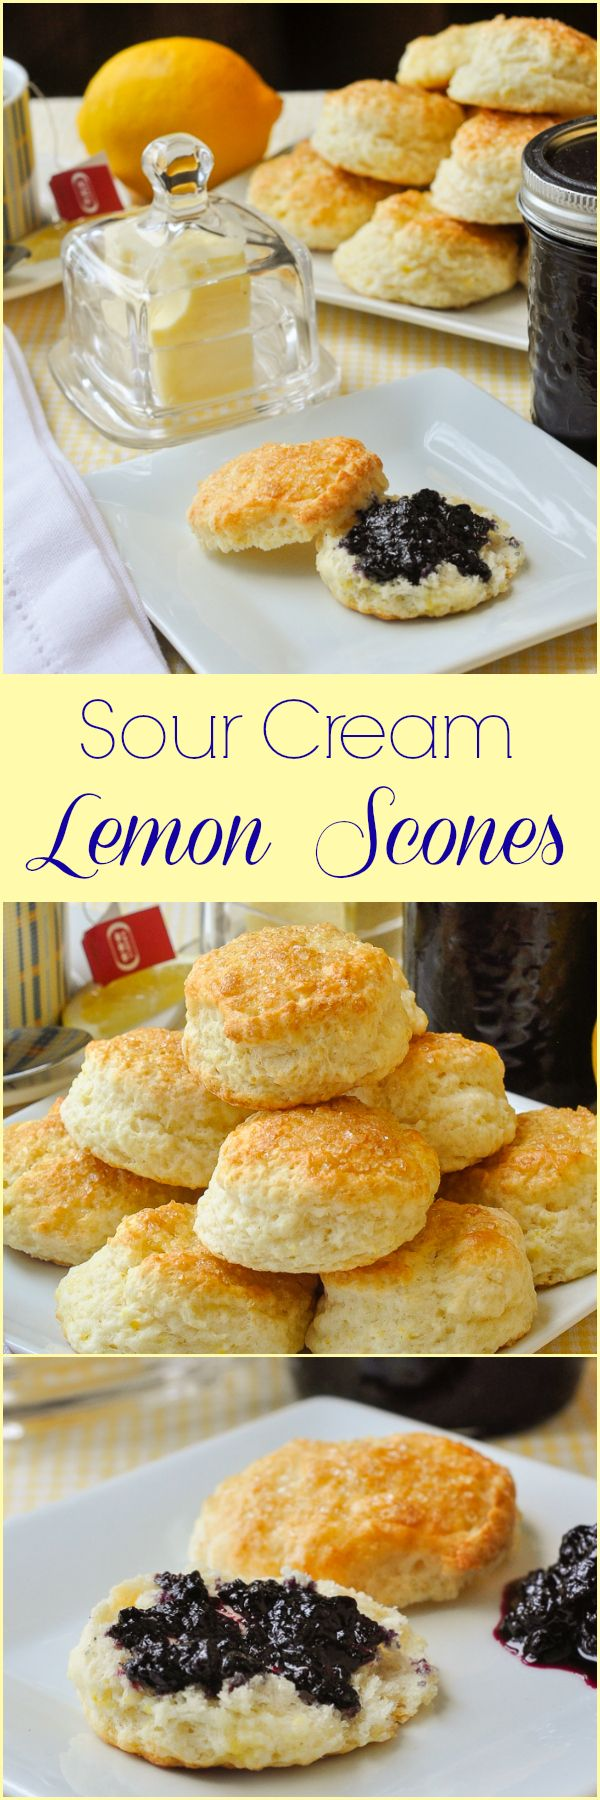 Sour Cream Lemon Scones Beautifully Light And Tender Little Lemon Scones That Go Together Particularly Well With Wild Blueberry Lemon Scones Tea Recipes Food